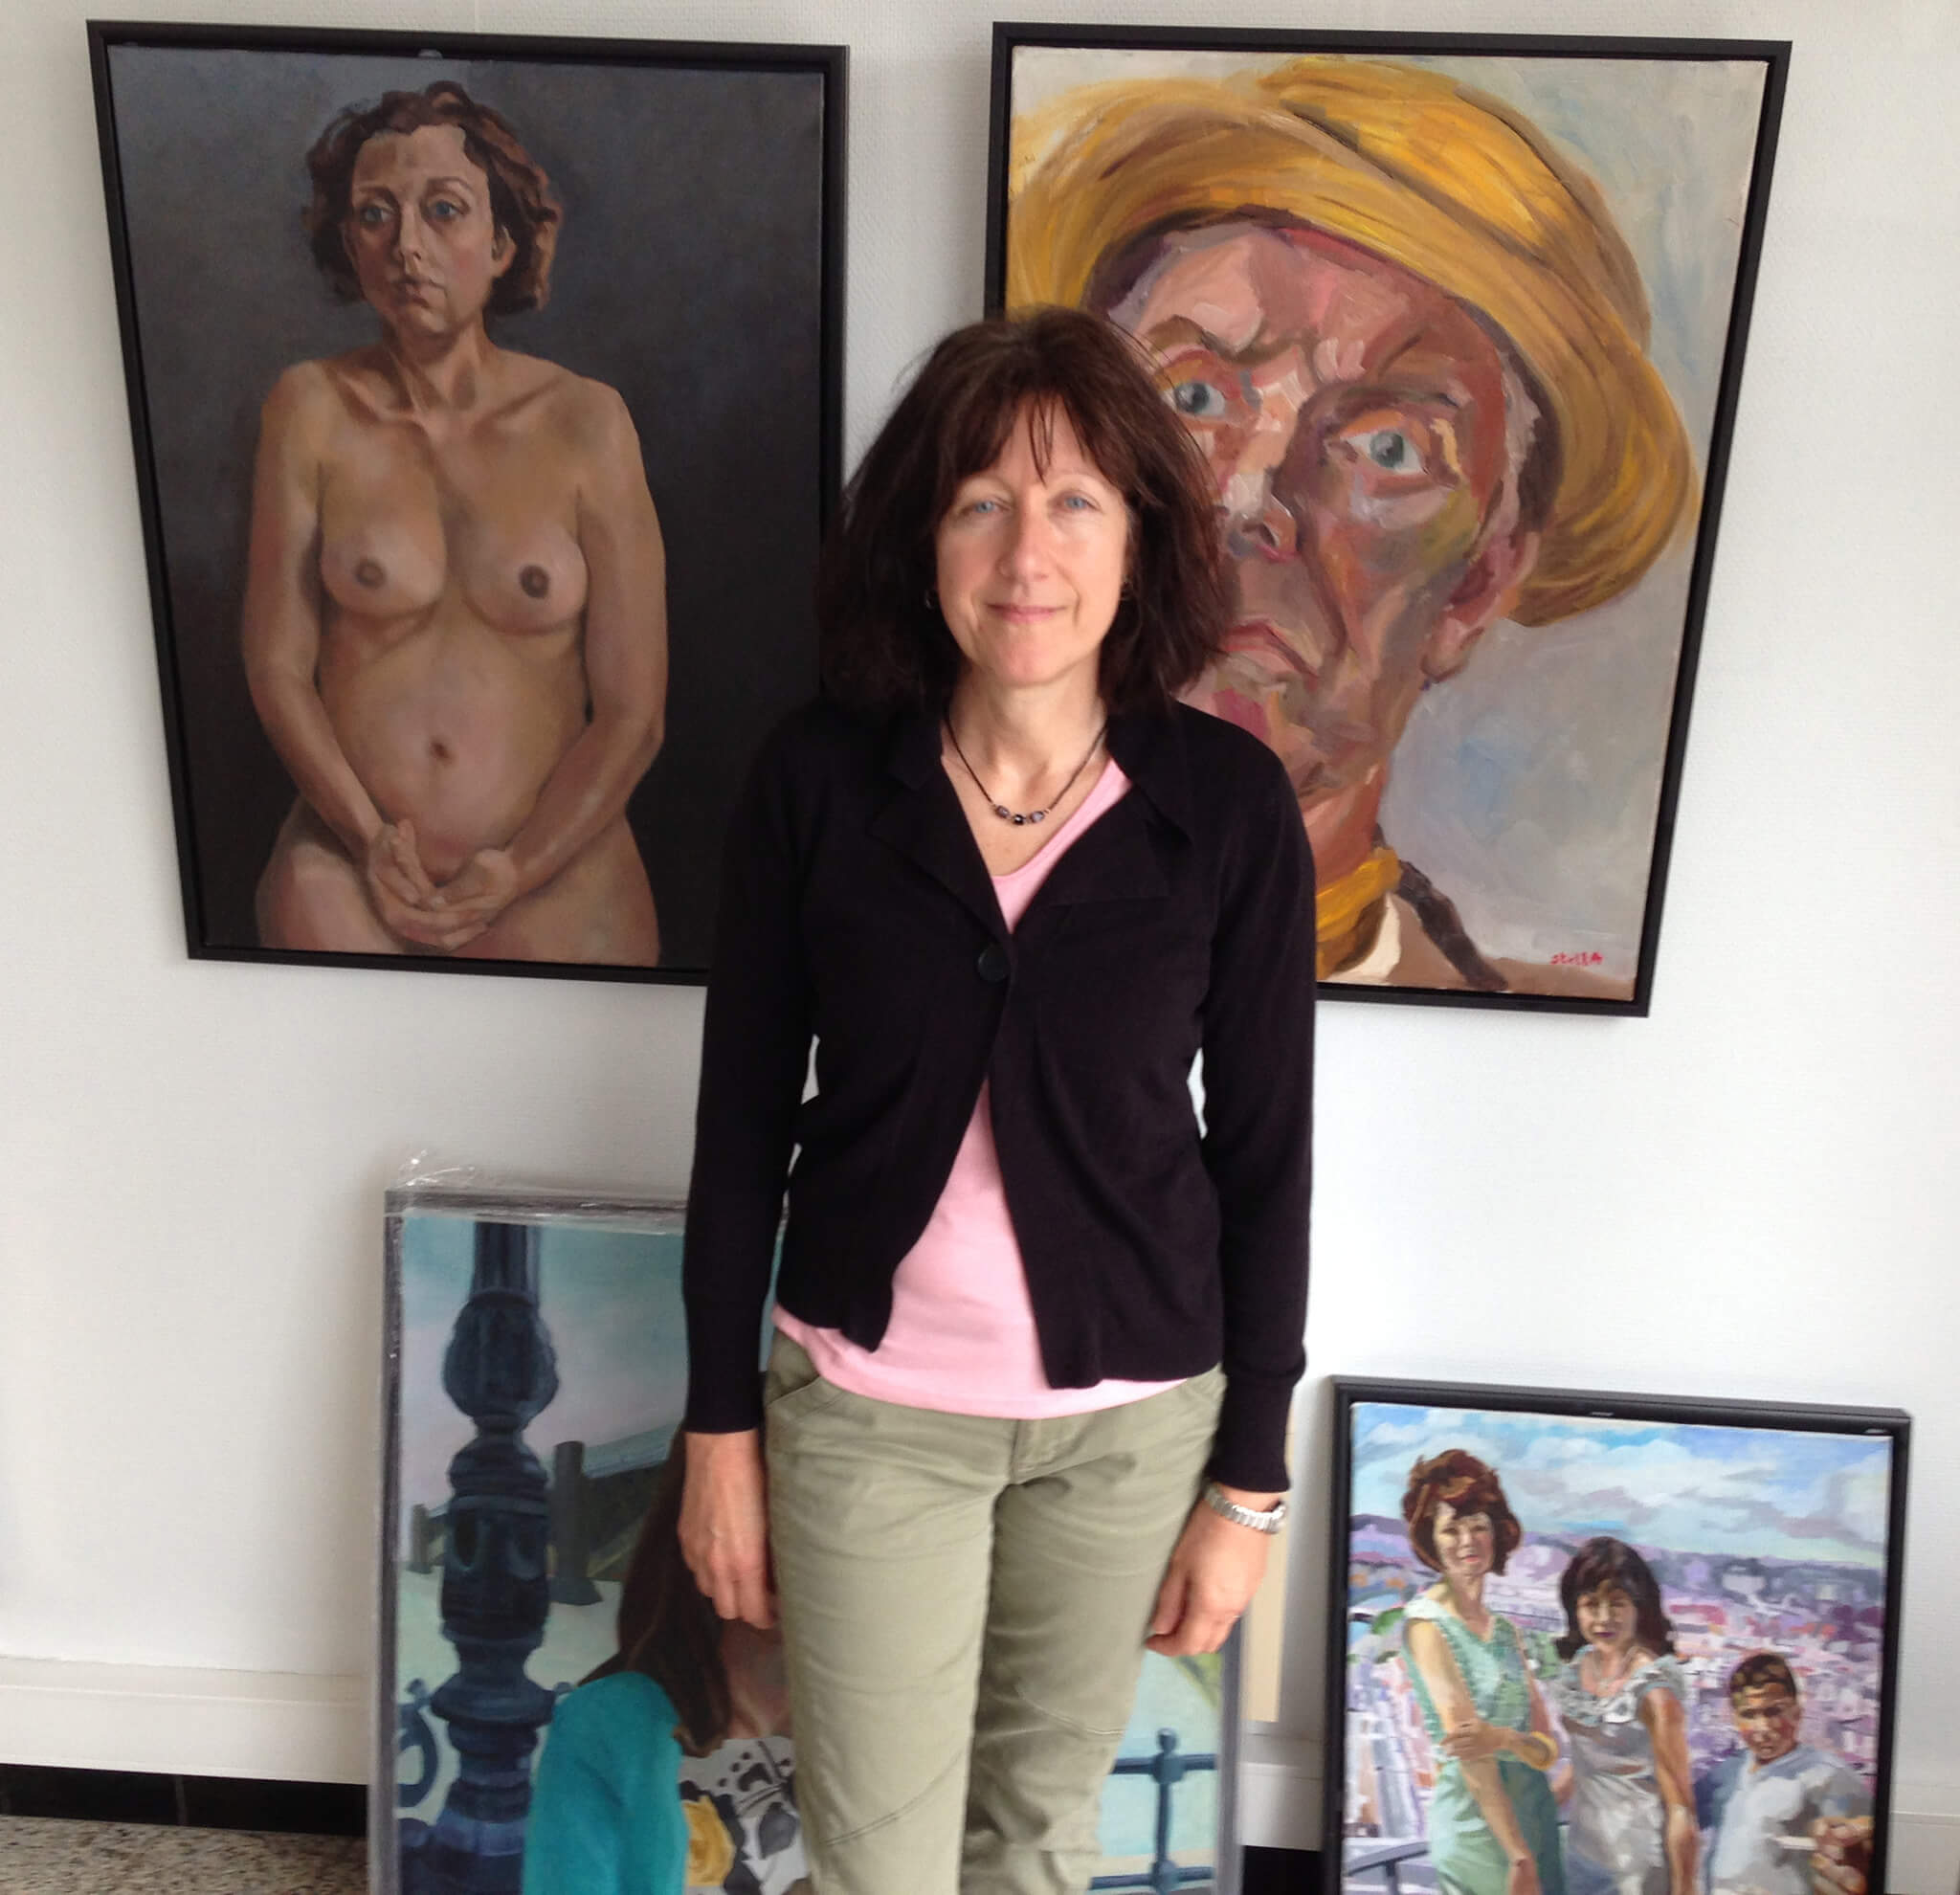 Artist Stella Tooth and oil portrait artworks in oils at Lissewege art gallery Belgium.